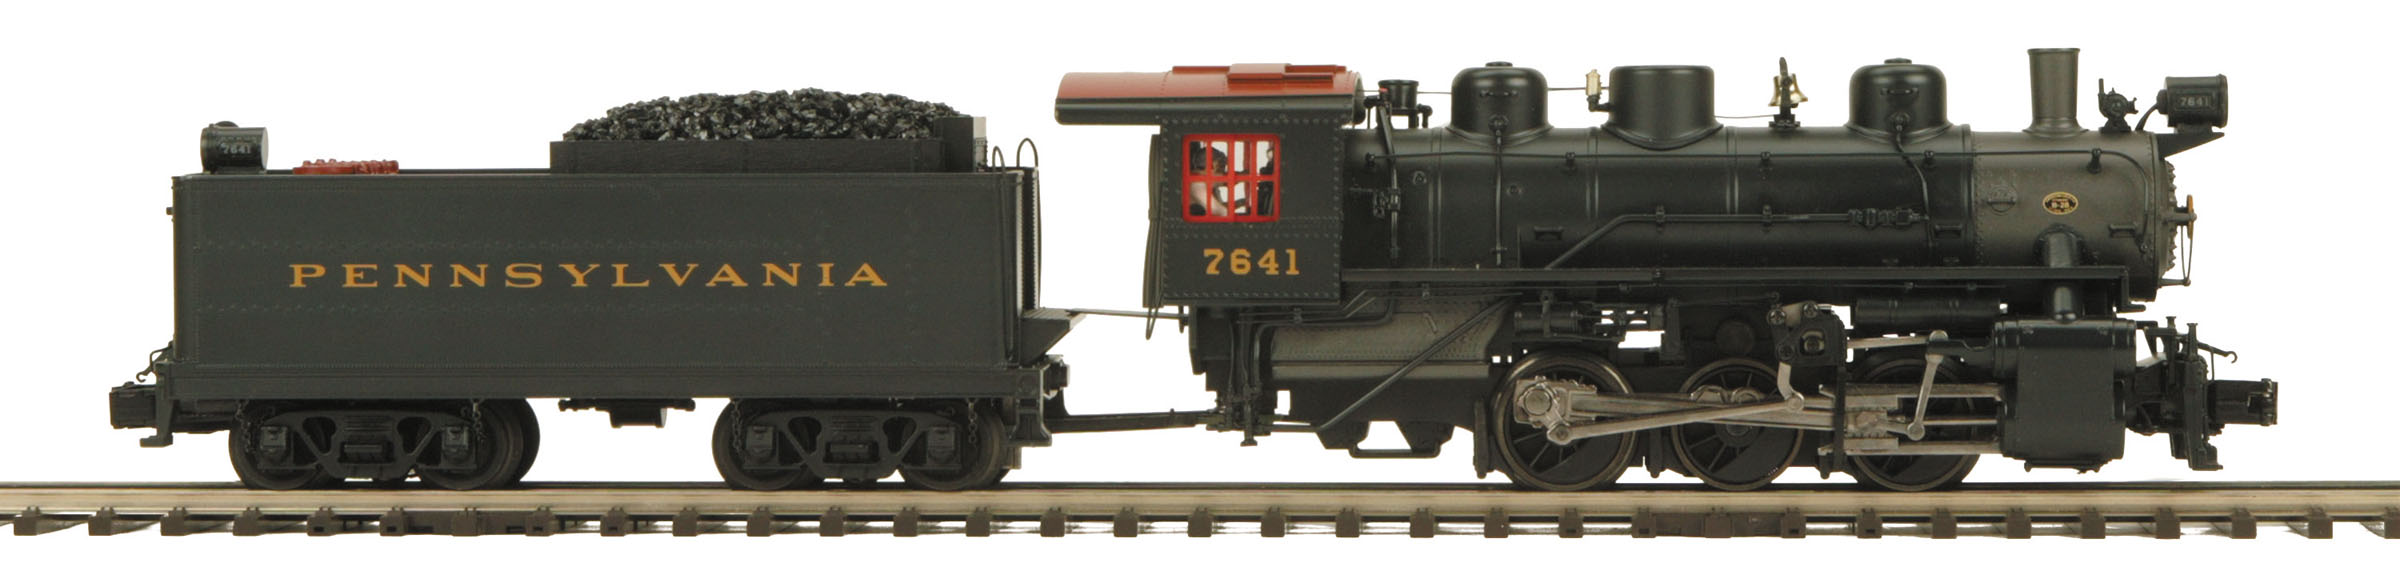 20 3280 1 Mth Electric Trains